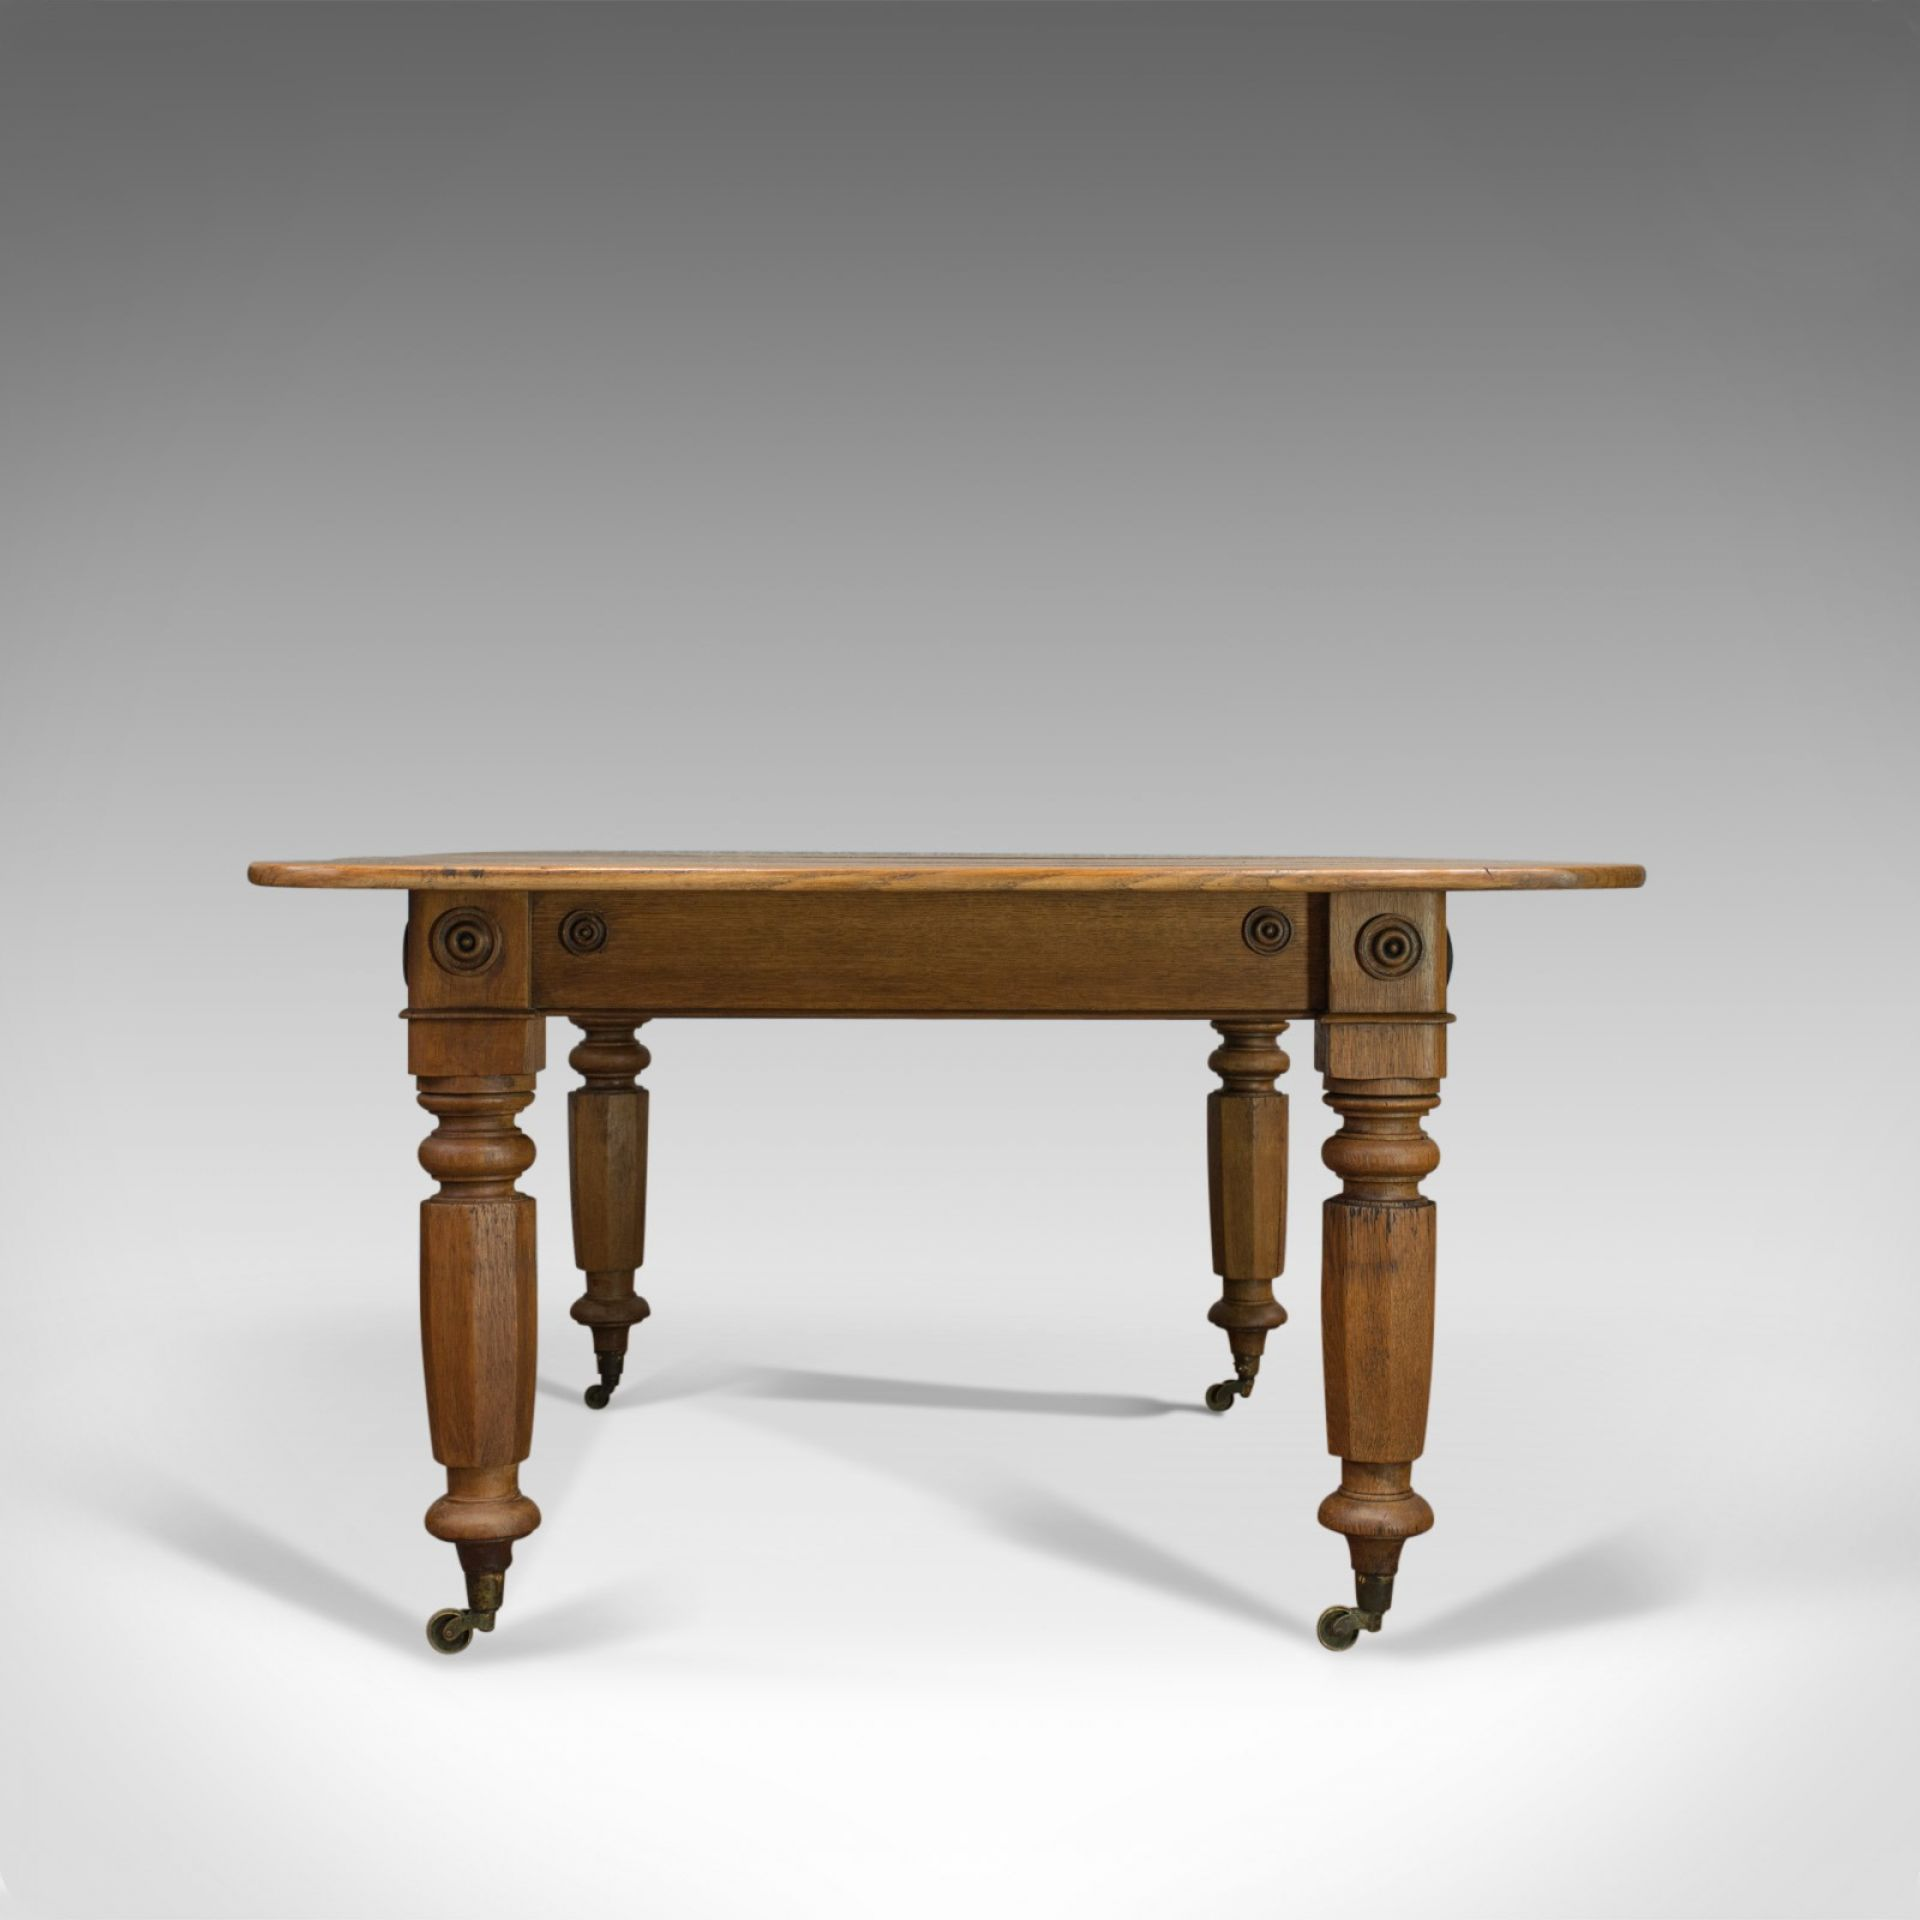 Antique Dining Table, English, Victorian, Oak, Country Kitchen, Seats Six, c1880